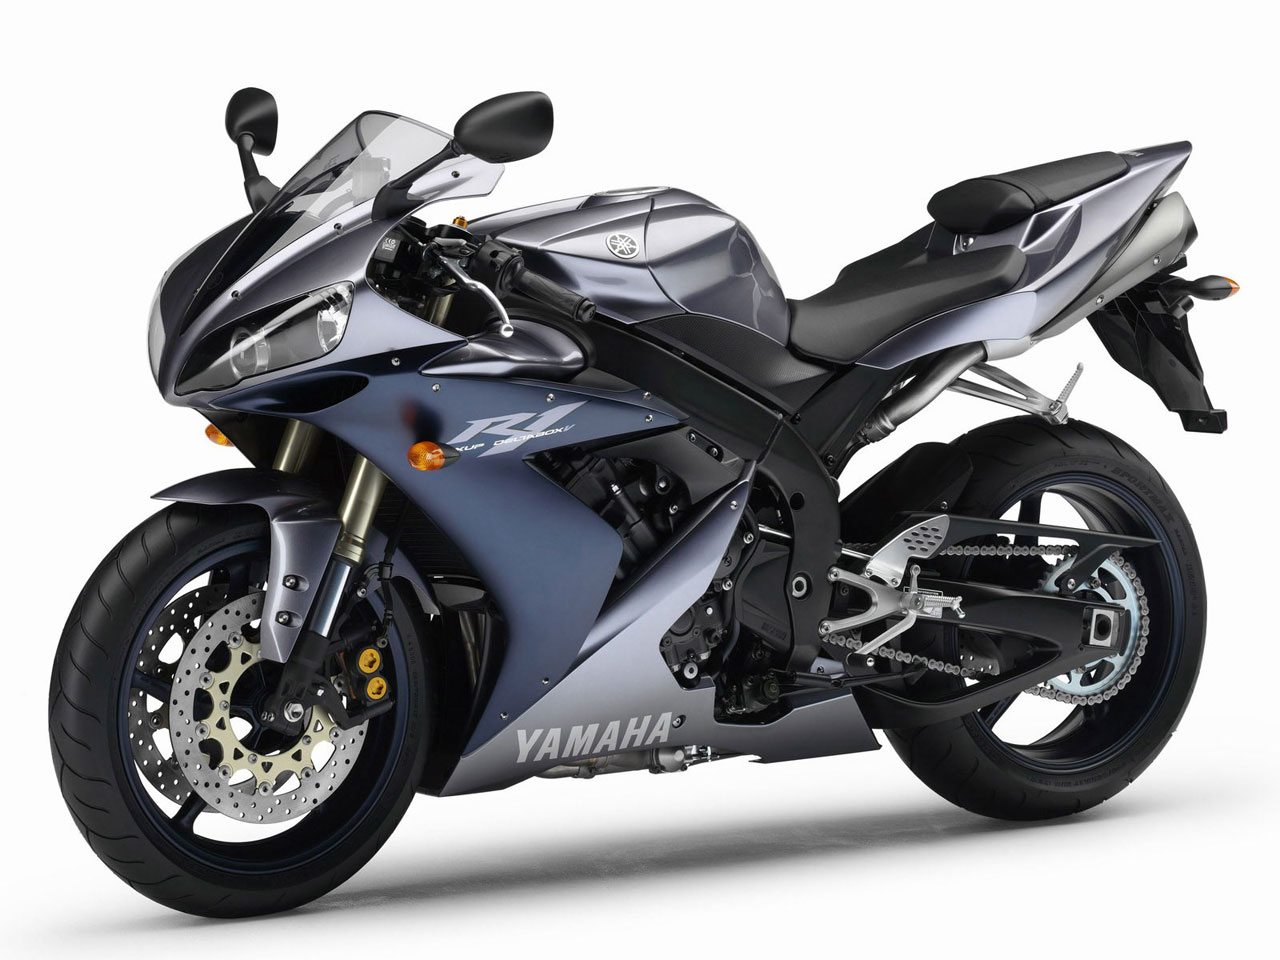 motorcycle motorcycle yamaha r1. Black Bedroom Furniture Sets. Home Design Ideas